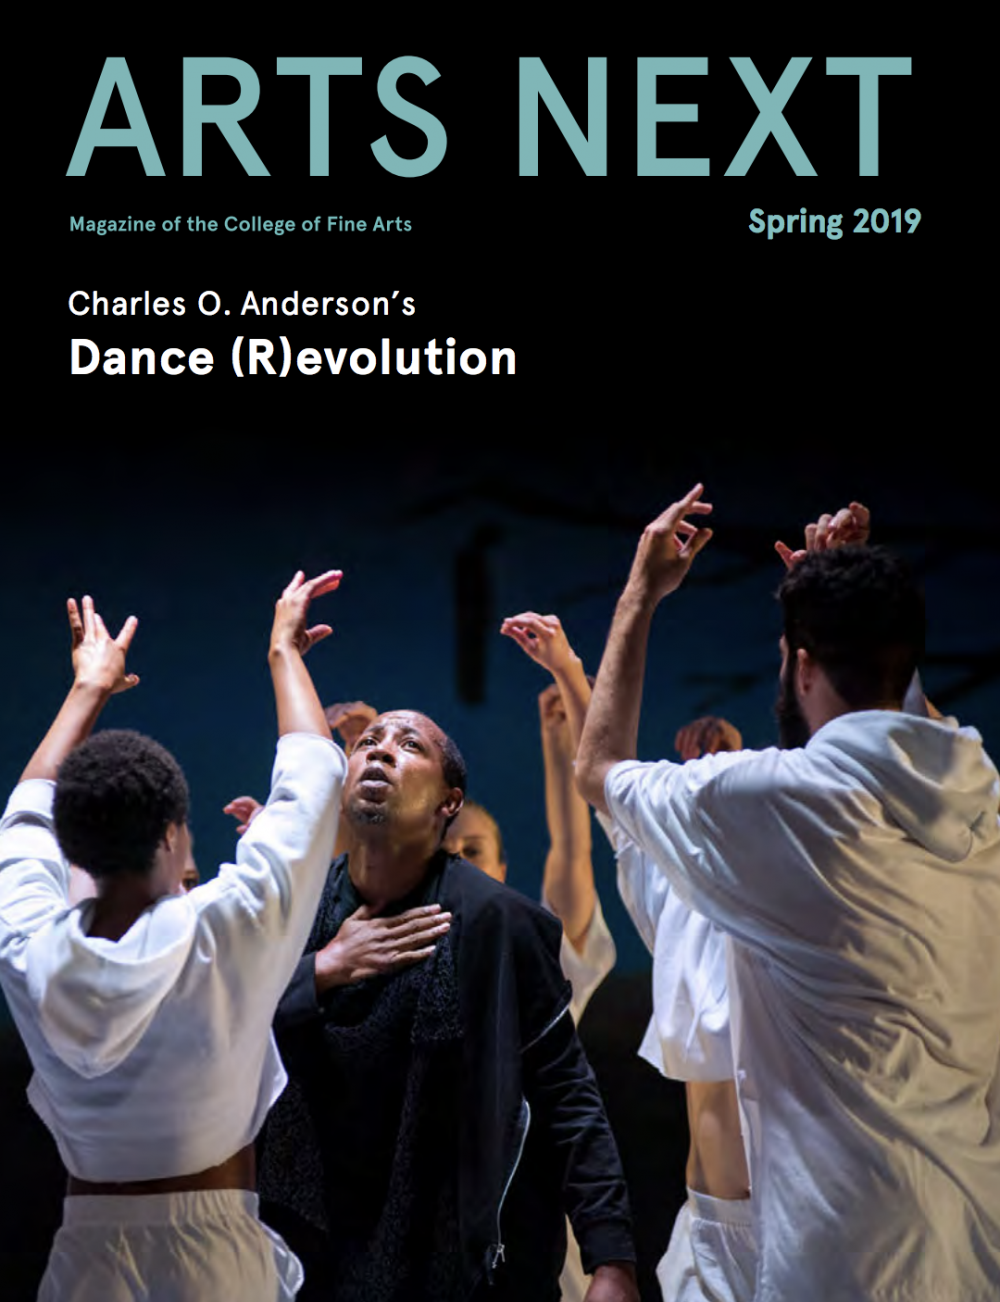 Cover of spring 2019 Arts Next